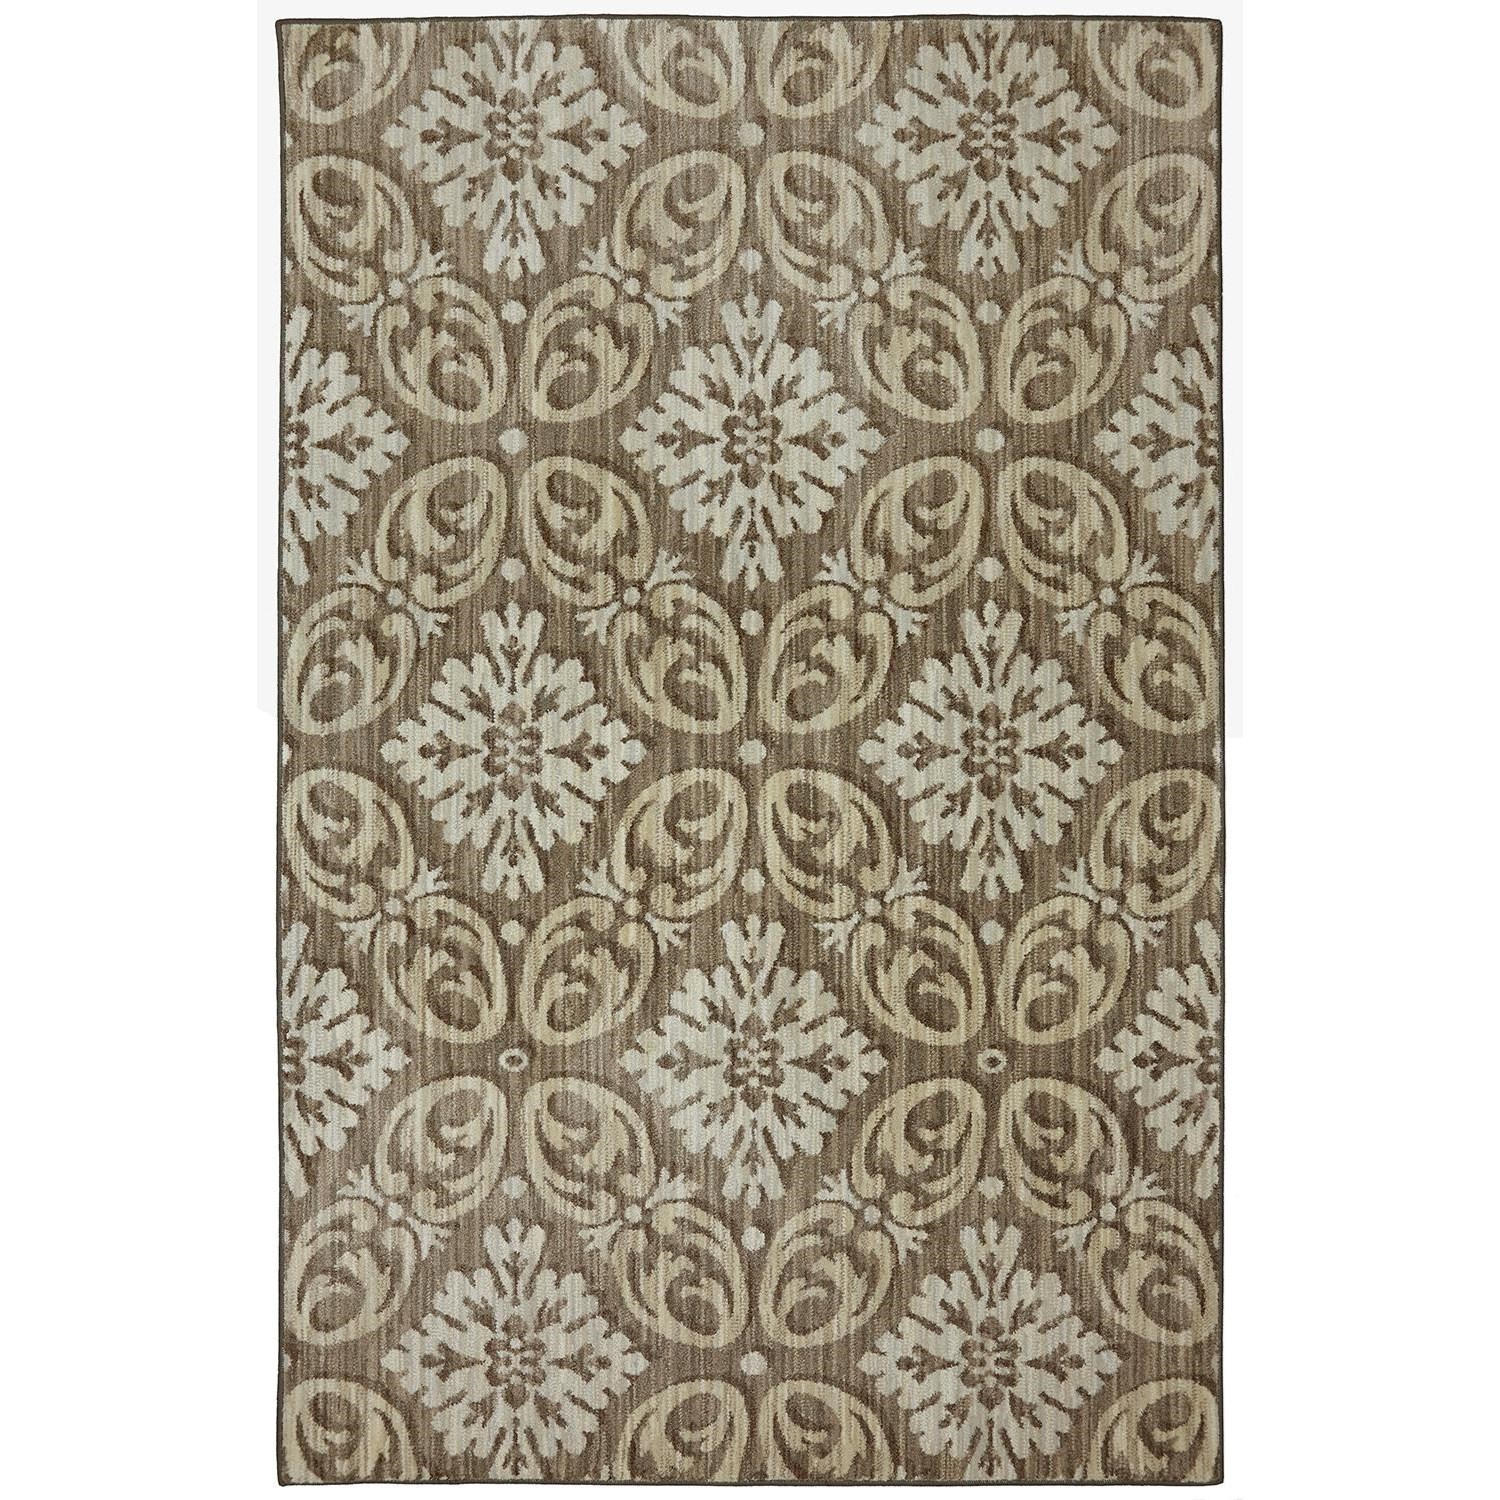 Karastan Rugs Euphoria 3'6x5'6 Findon Brown Rug - Item Number: 90271 80062 042066